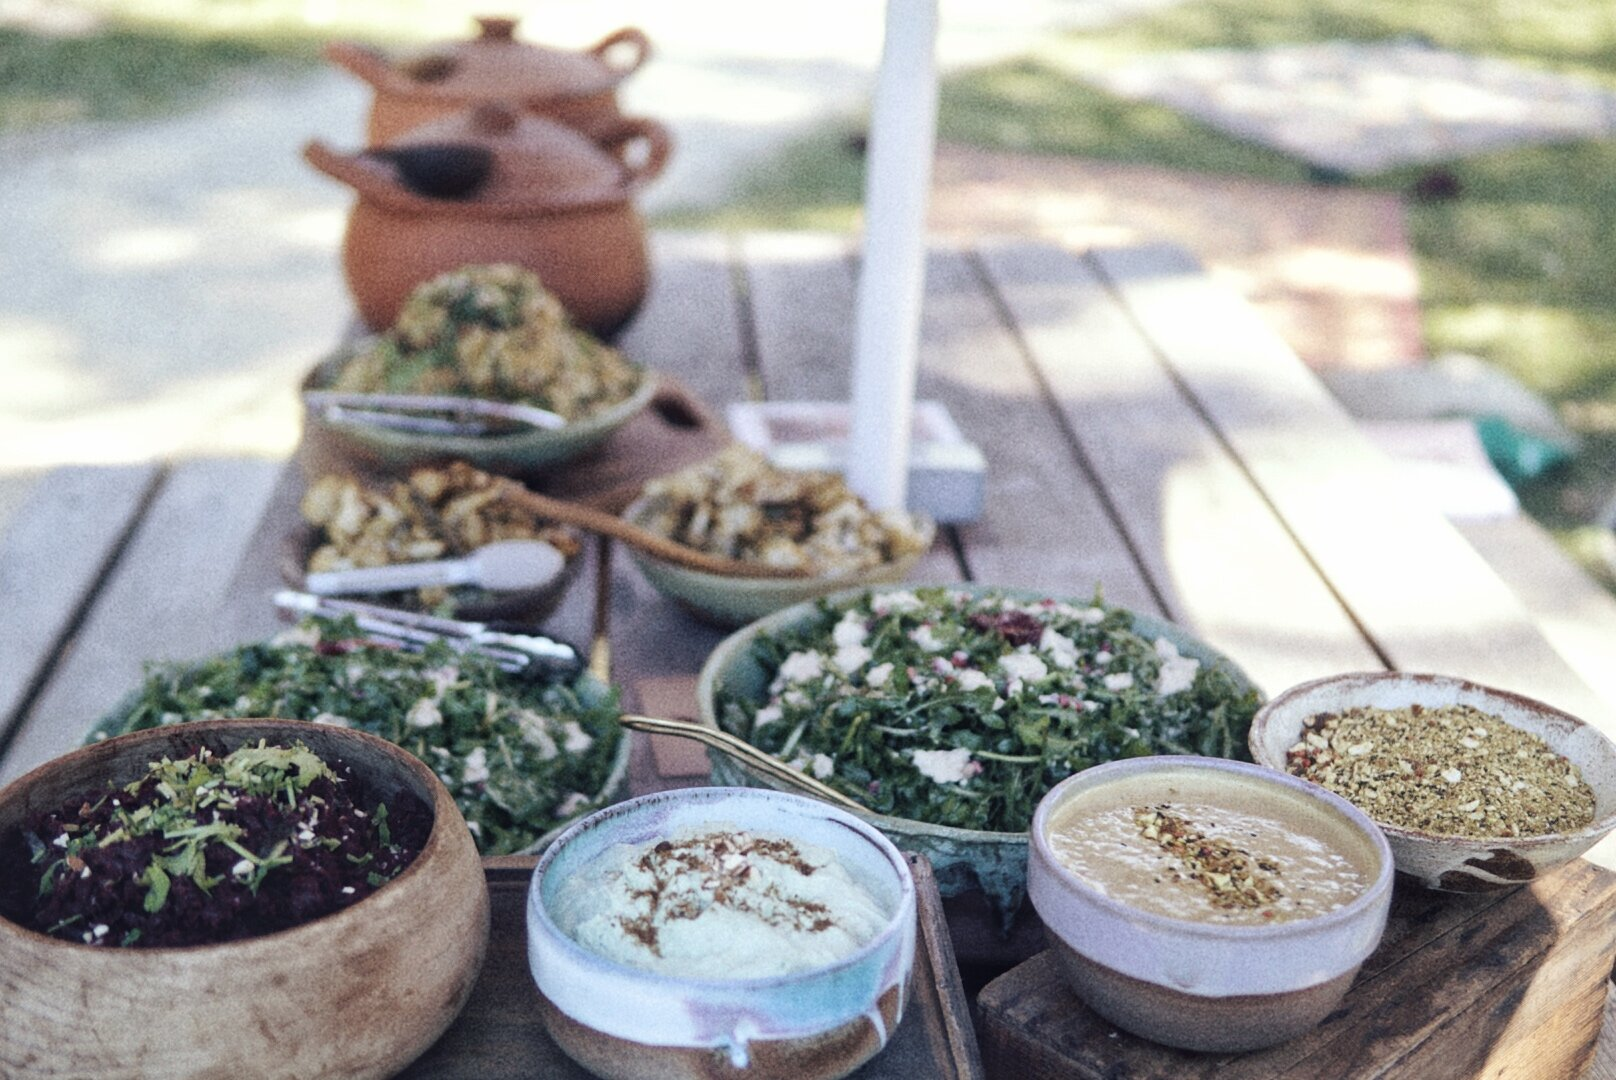 picnic style plant-based lunch @luckymama_aus